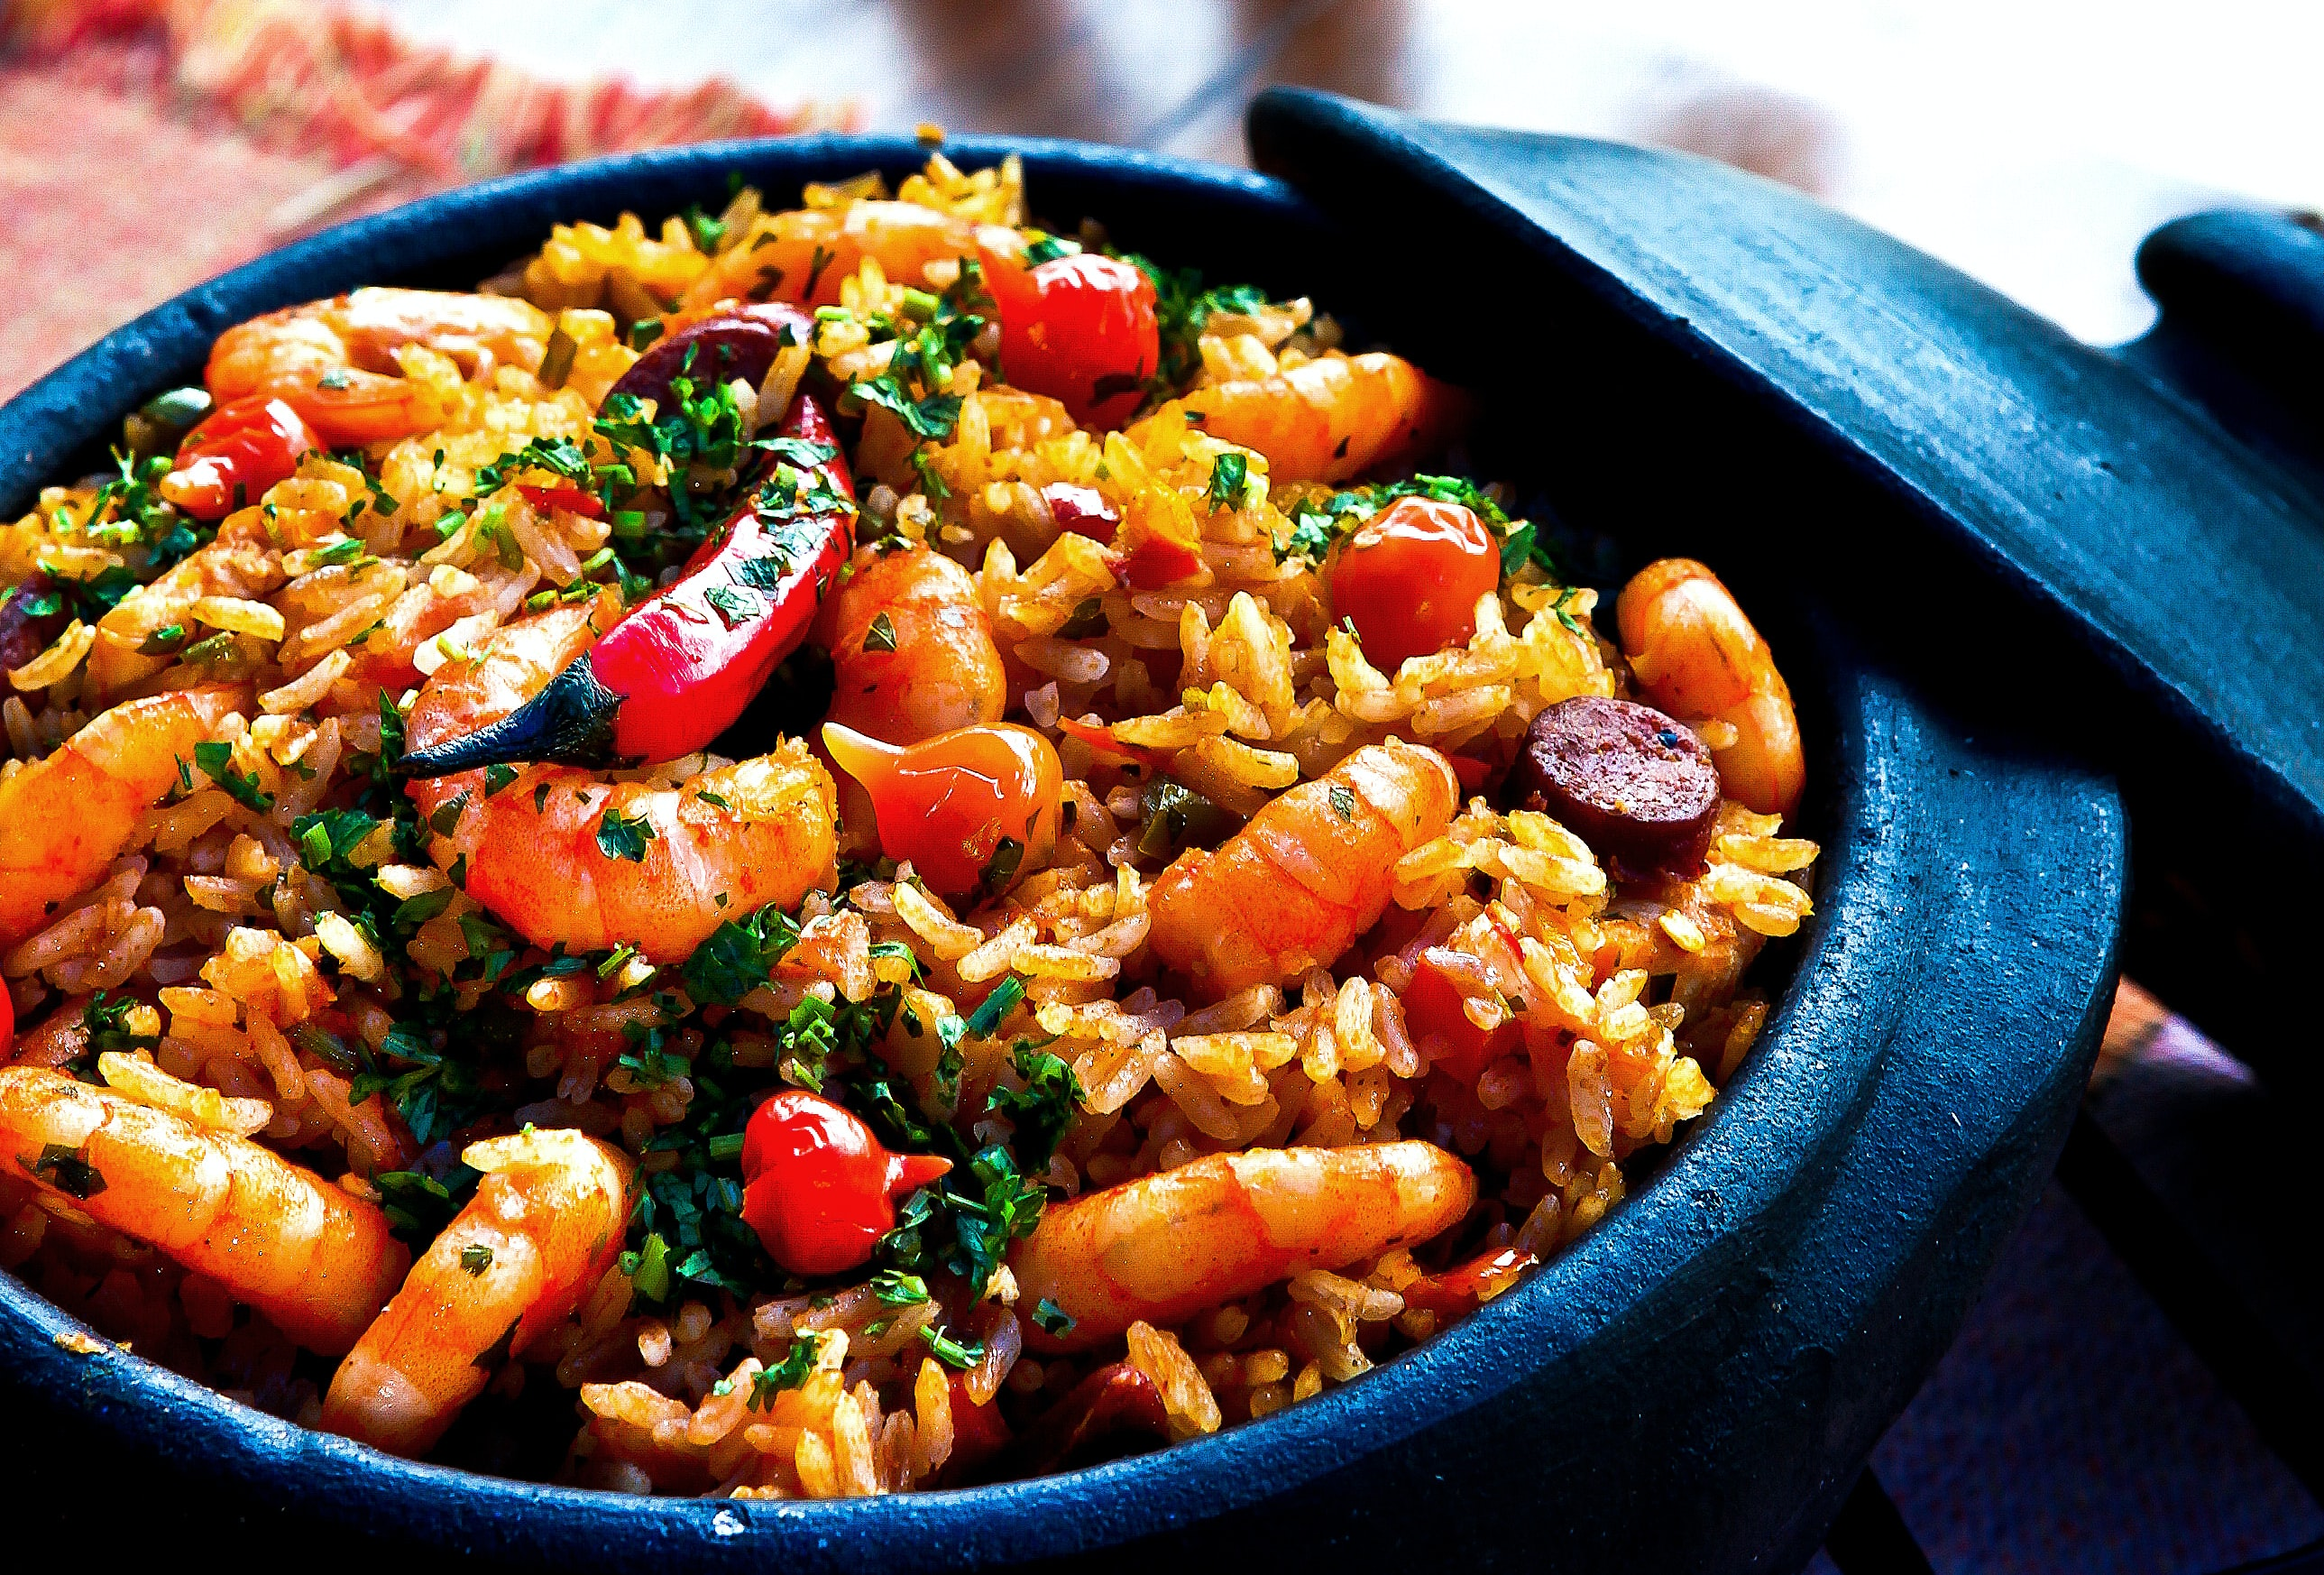 Pot of Spanish paella with shrimp, rice, sausage, and peppers for dinner